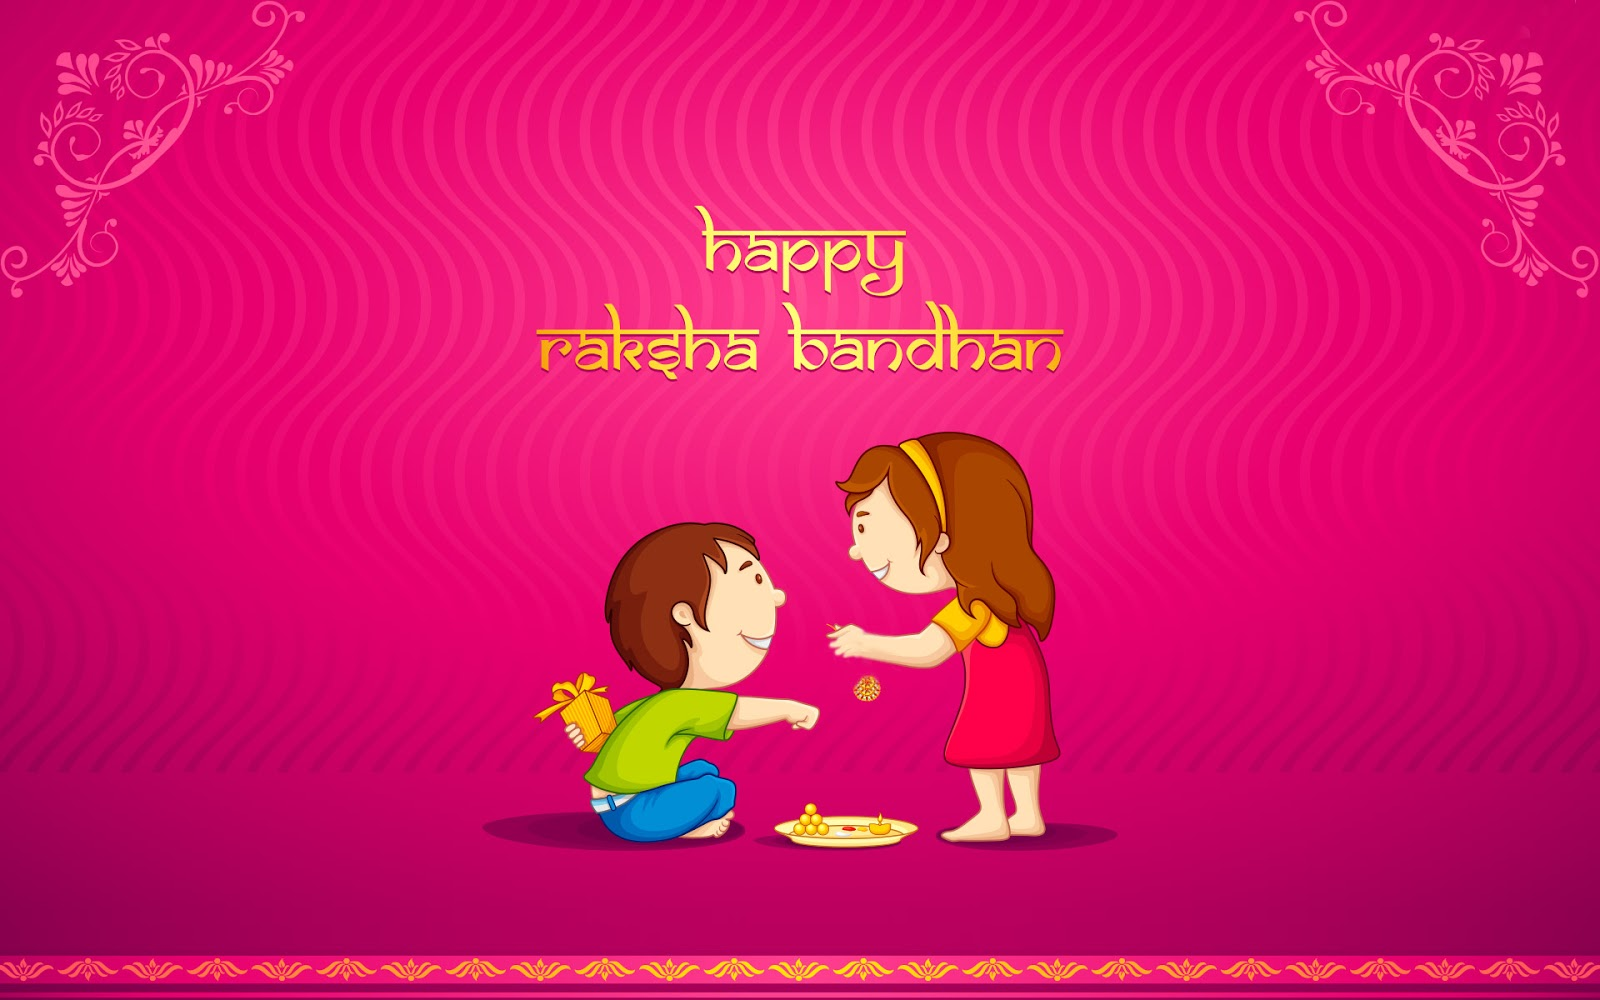 Raksha bandhan quotes for Brother & Sister